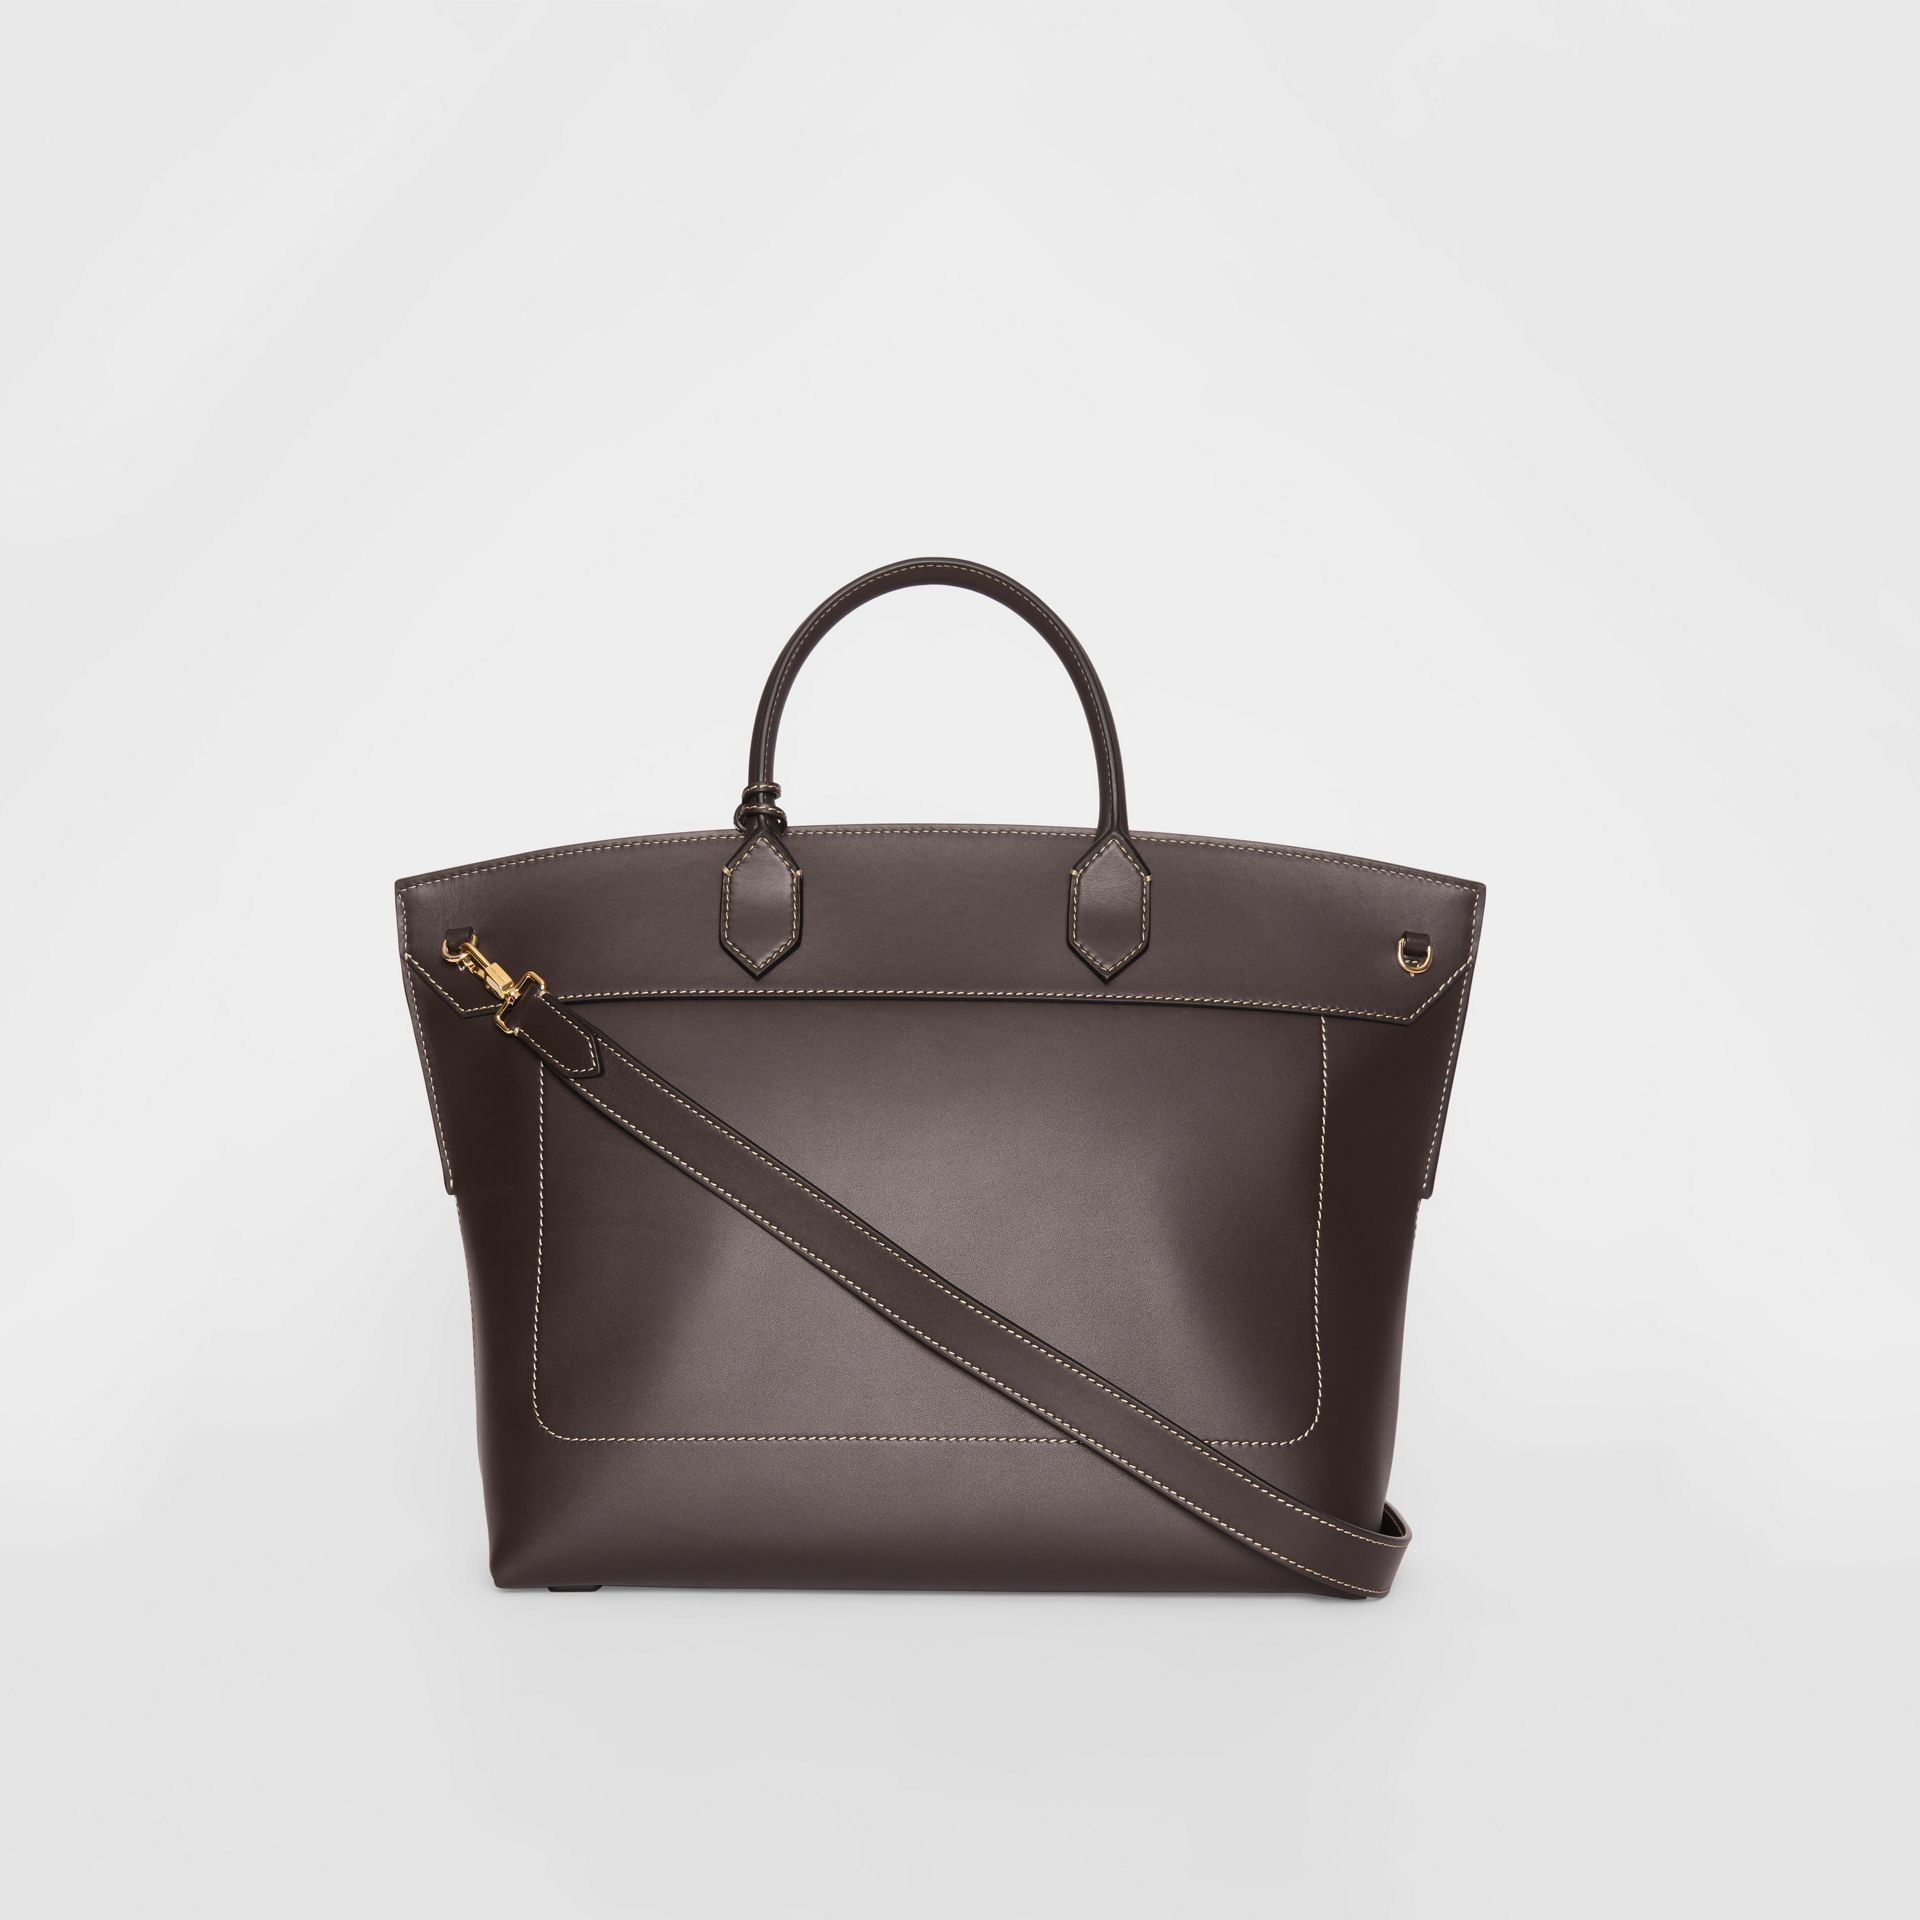 Leather Society Top Handle Bag in Coffee - Women | Burberry - gallery image 7